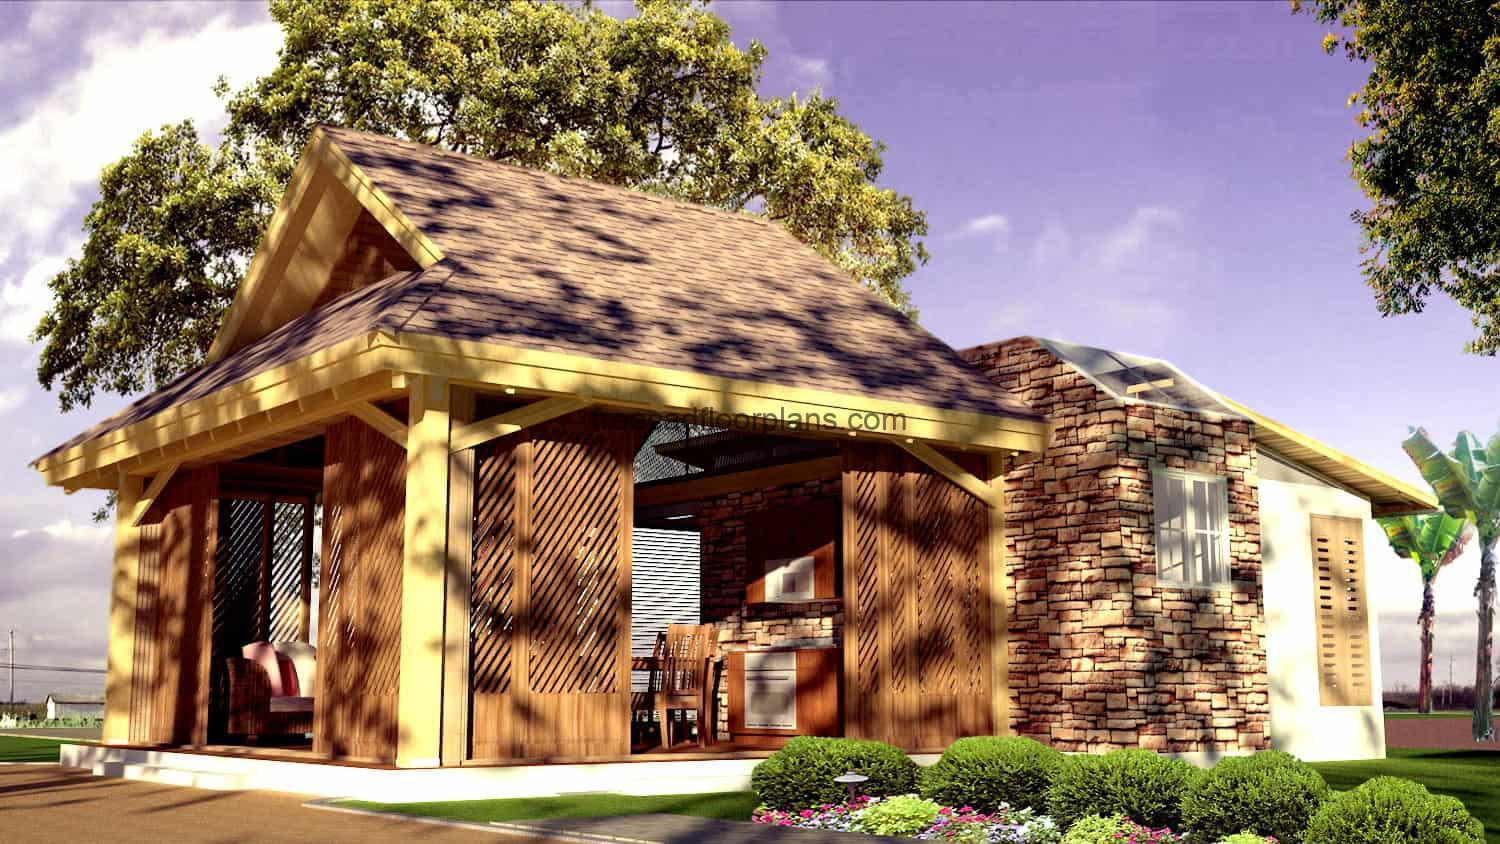 Progressive country house A render architectural project